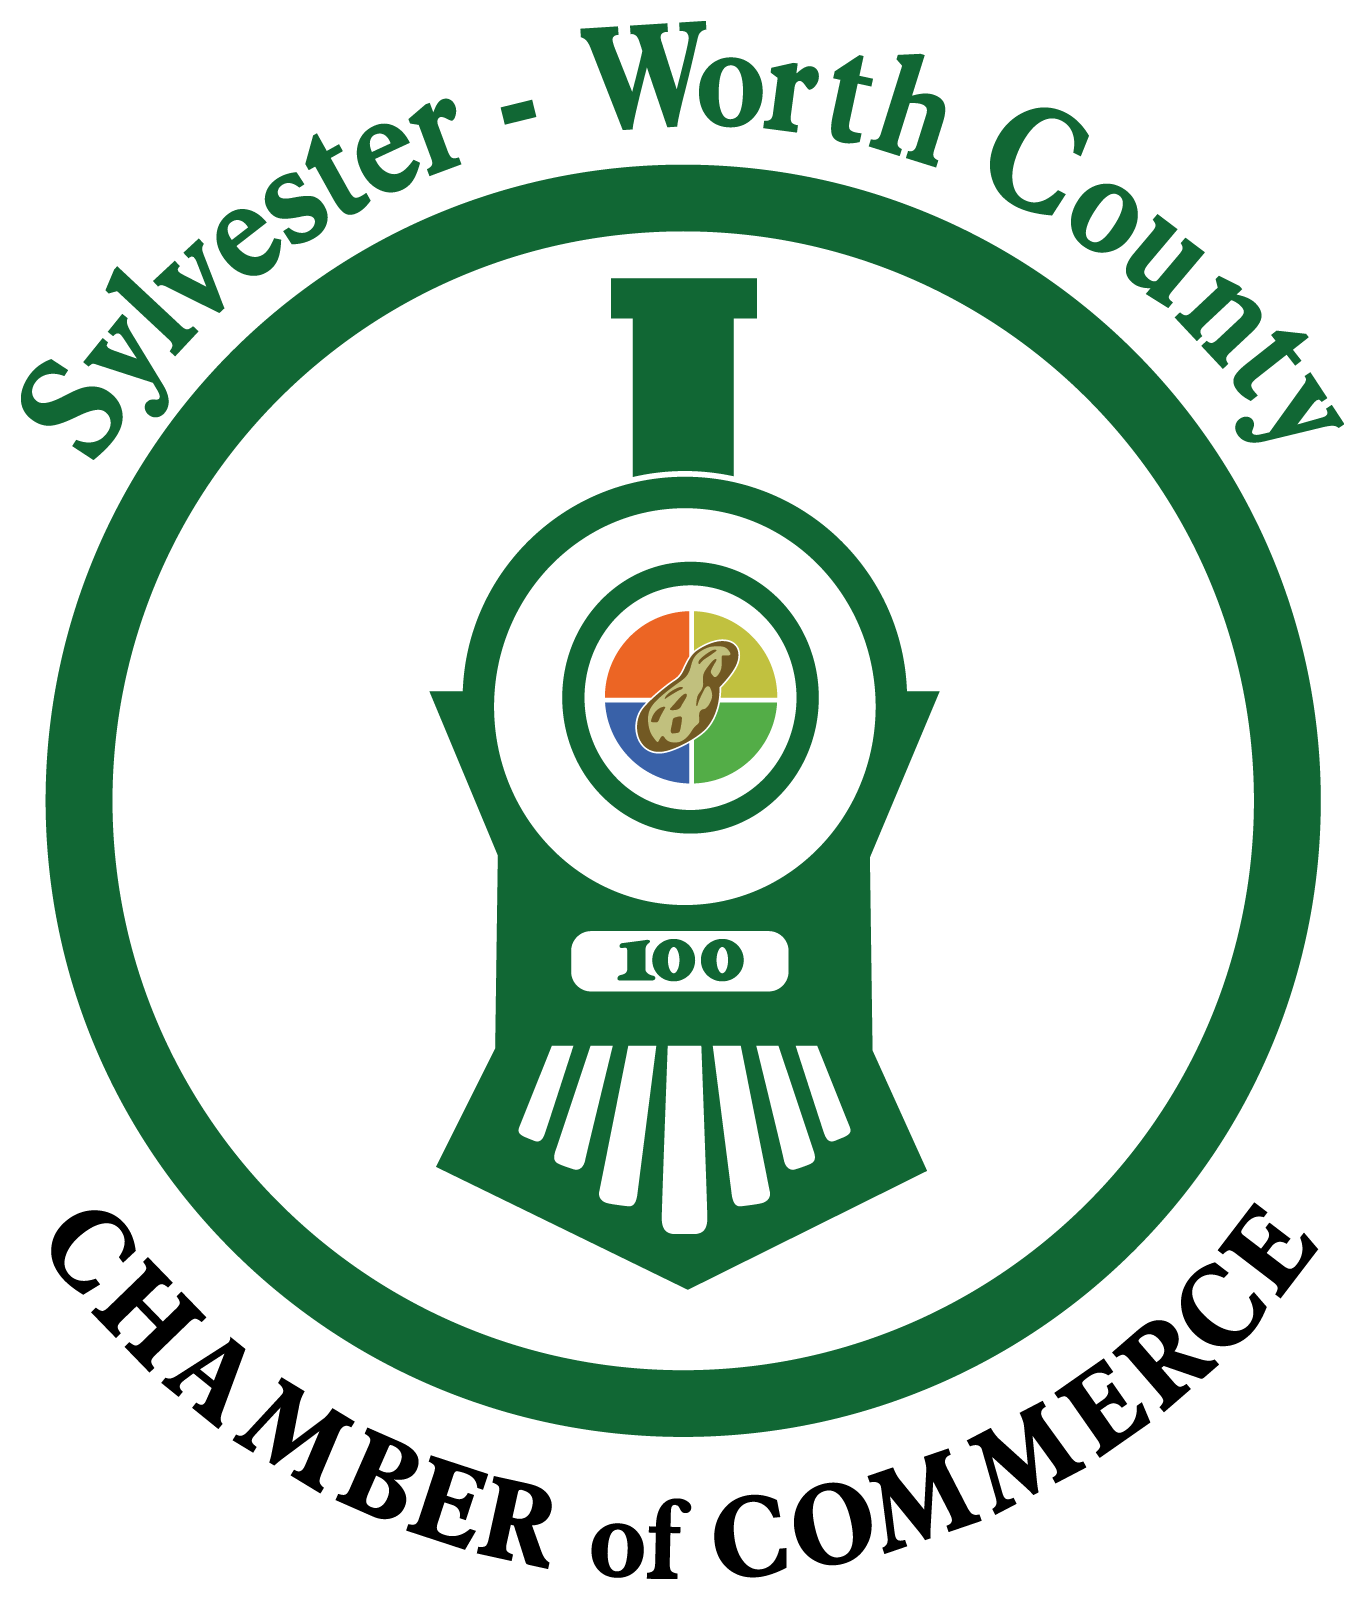 Sylvester Worth County Chamber of Commerce